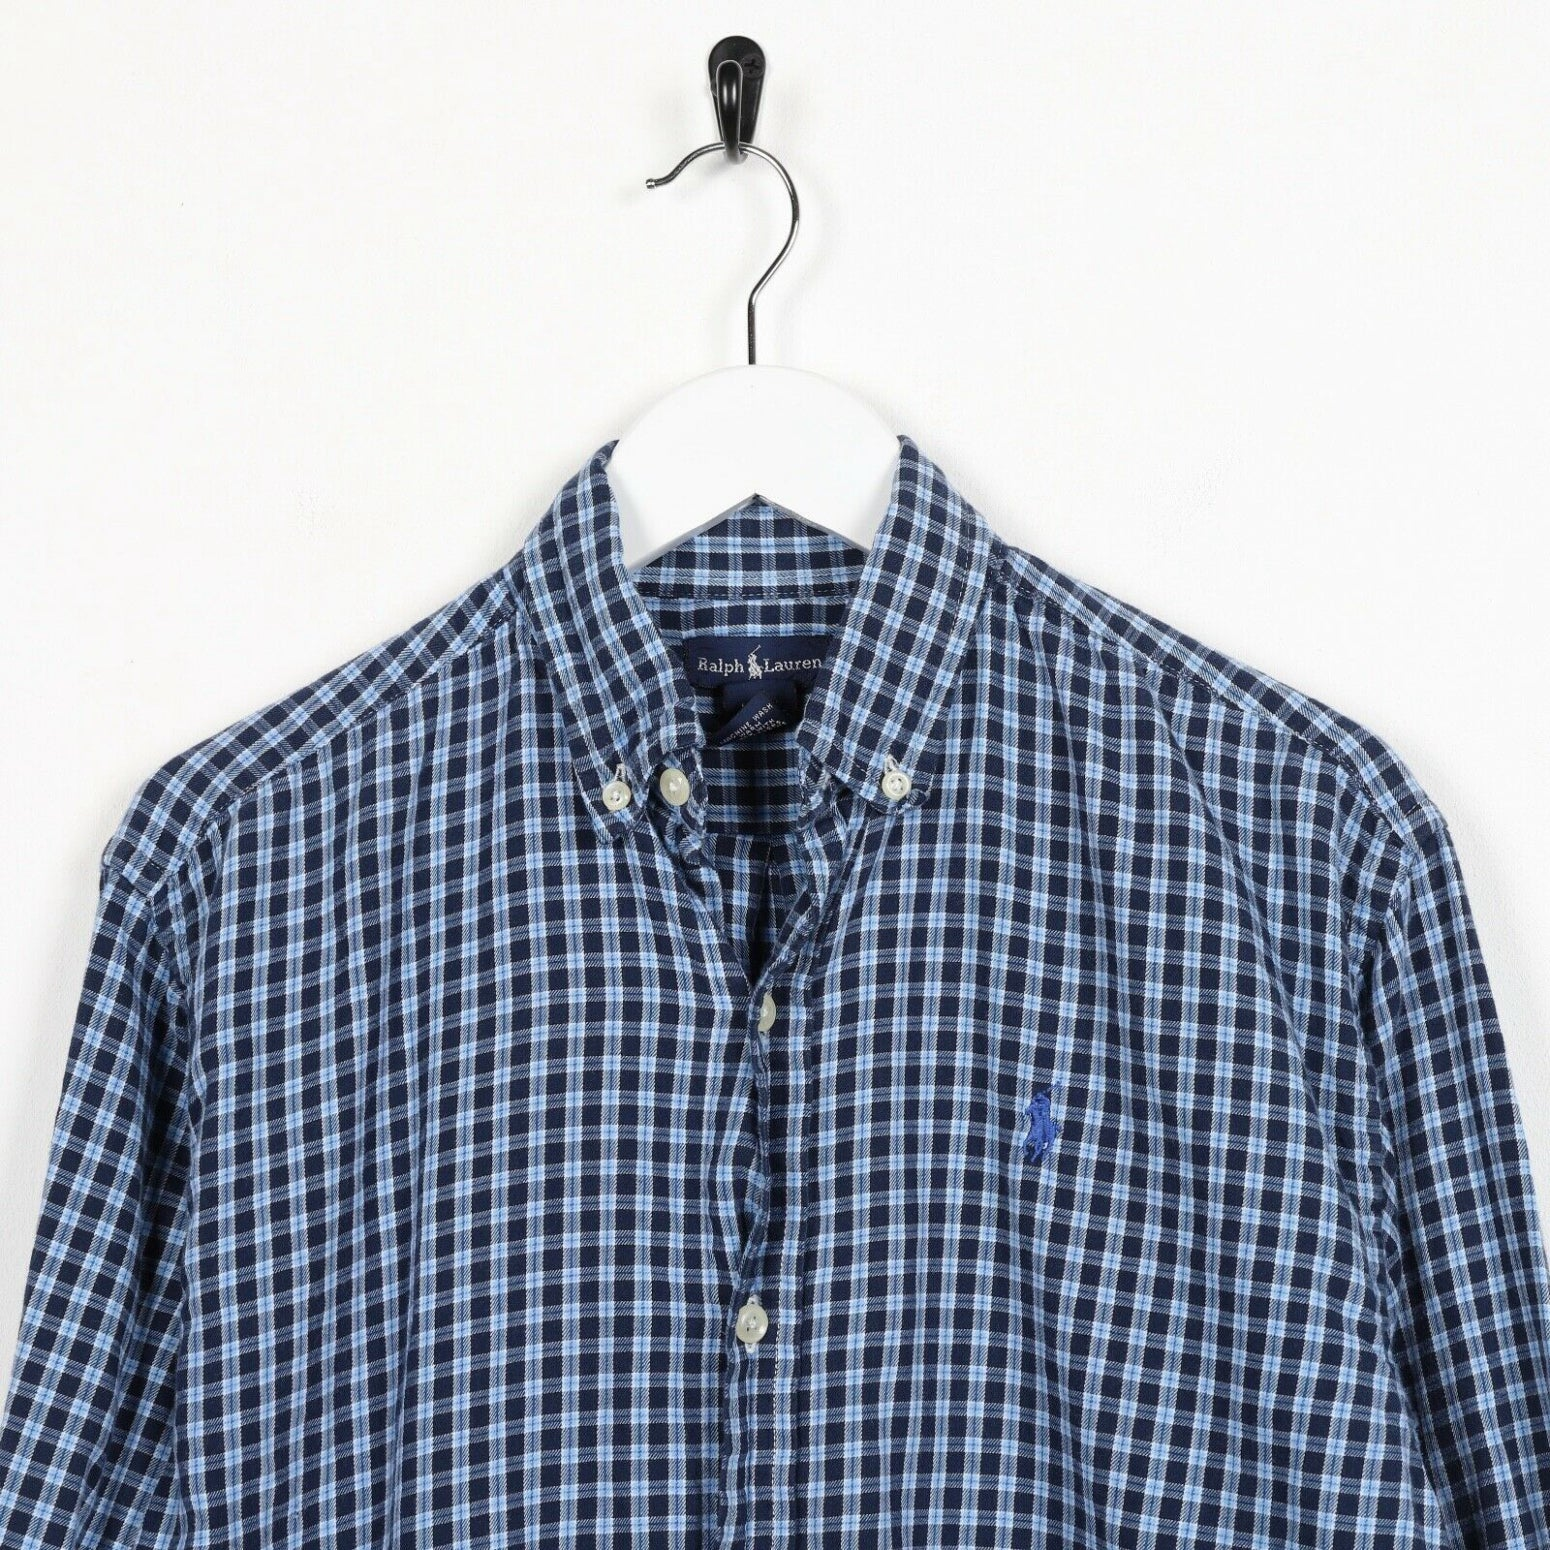 Vintage Women's RALPH LAUREN Small Logo Check Shirt Blue small s